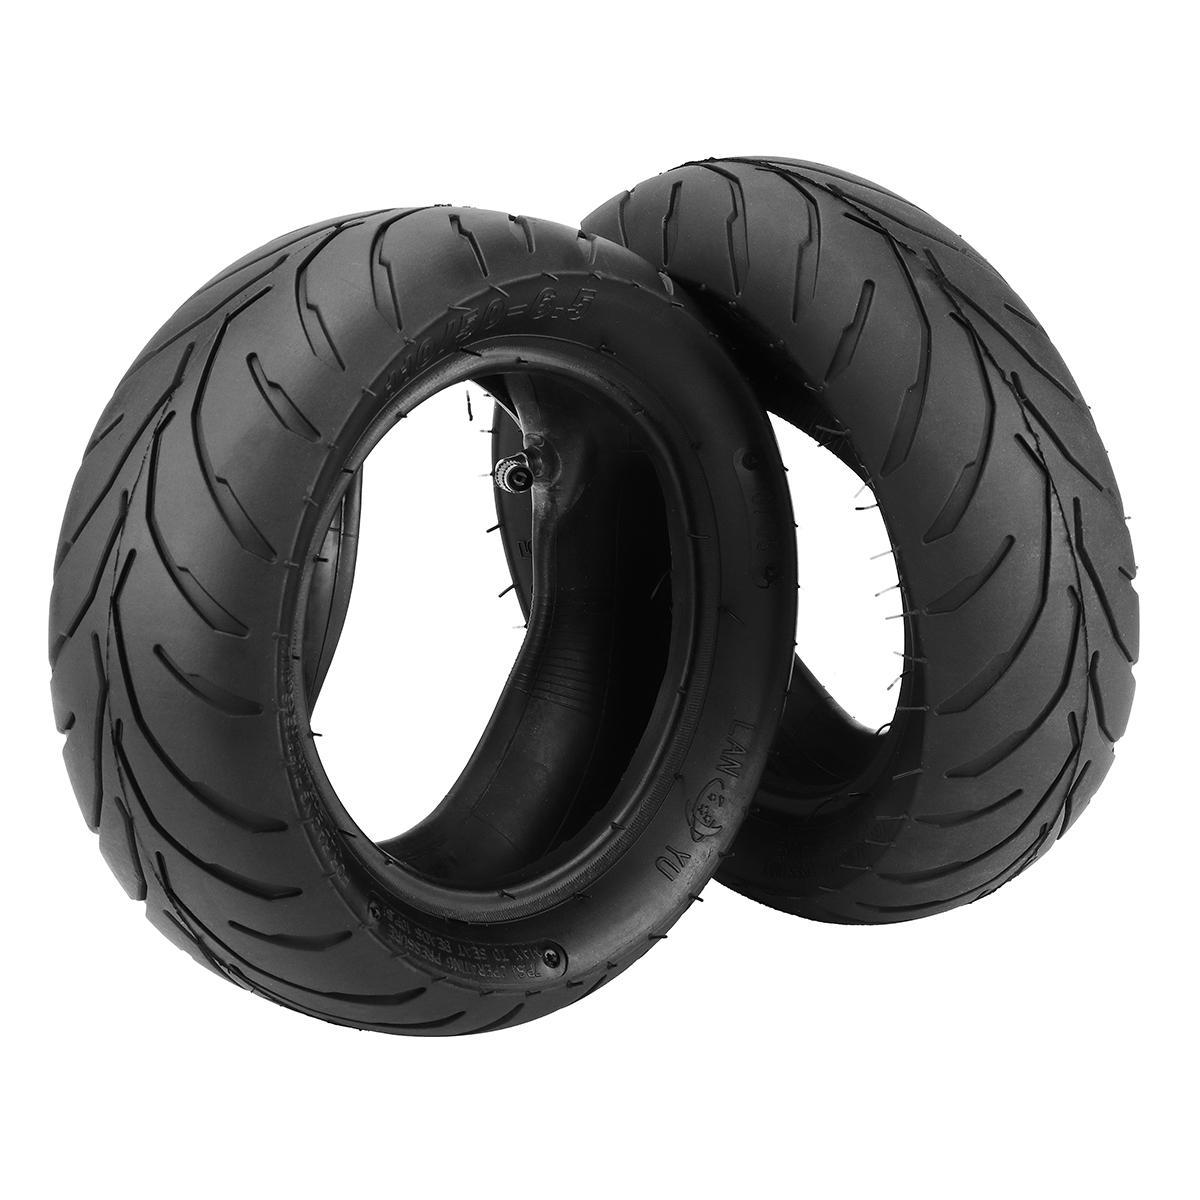 Us 19 99 47cc 49cc Mini Pocket Bike Tire Inner Tube 110 50 6 5 90 65 6 5 Front Rear Motorcycle From Automobiles Motorcycles On Banggood Com Pocket Bike Bike Tire Tire